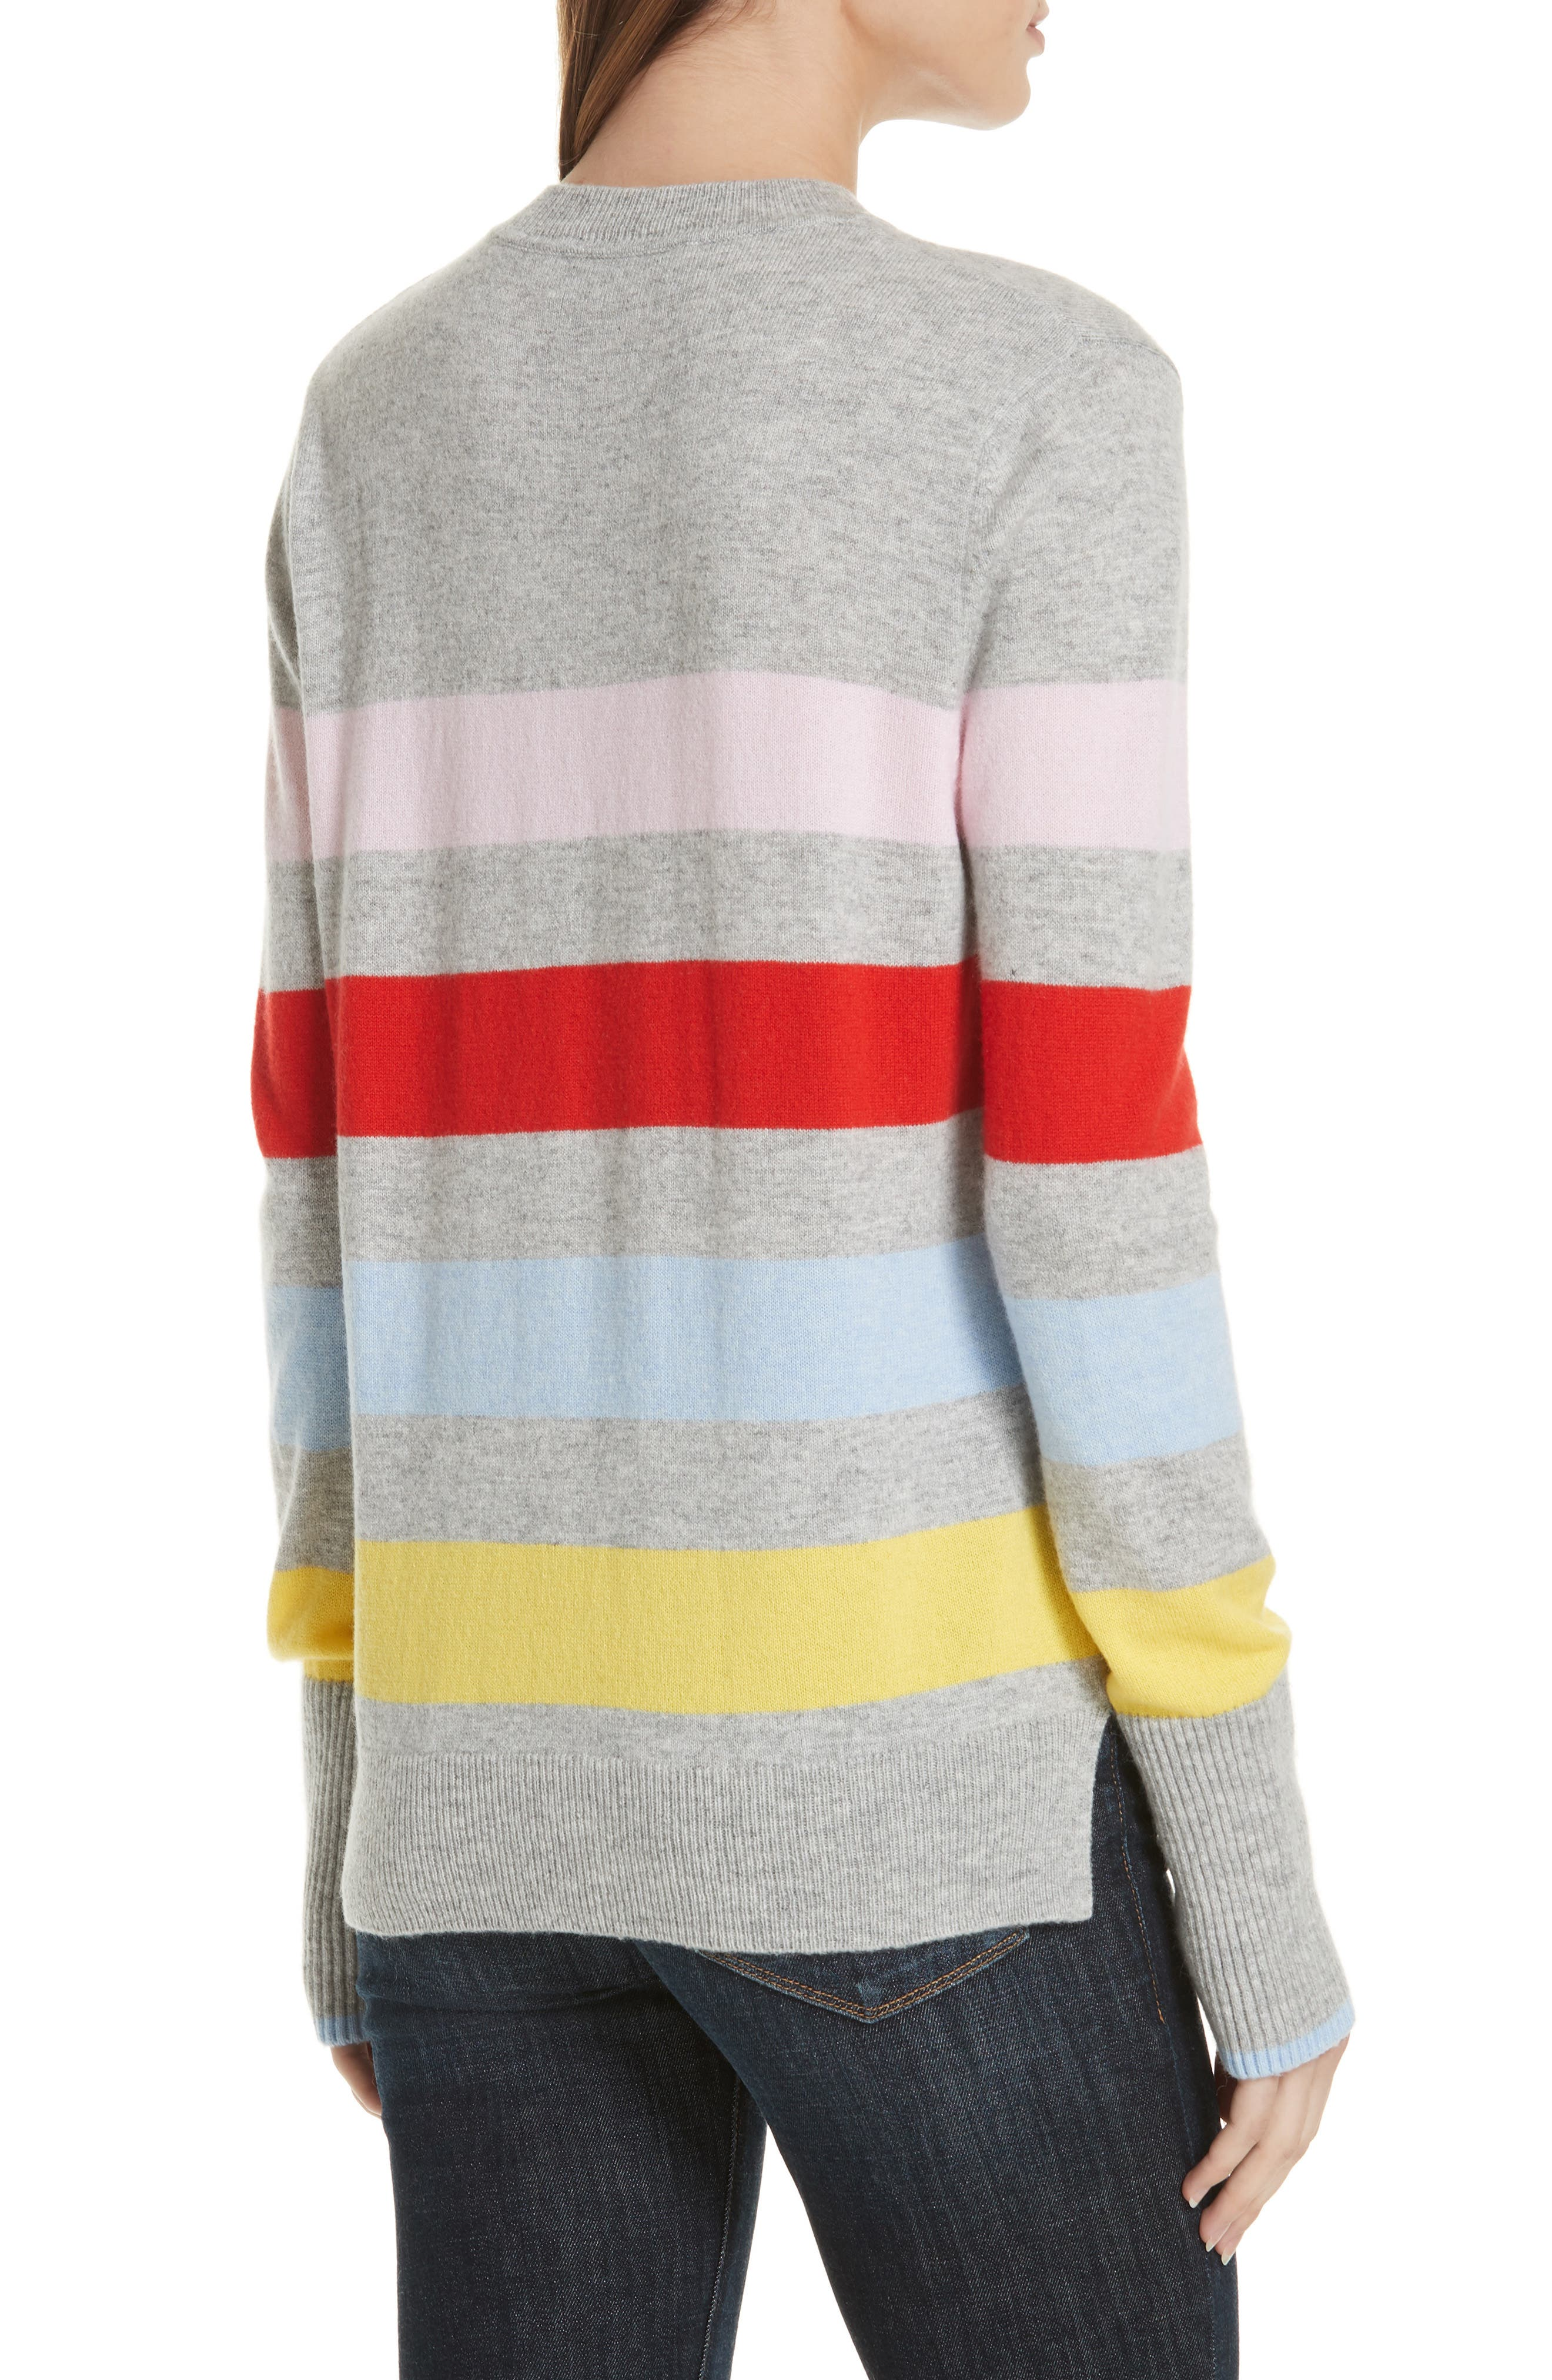 AAA Candy Stripe Cashmere Sweater,                             Alternate thumbnail 2, color,                             020